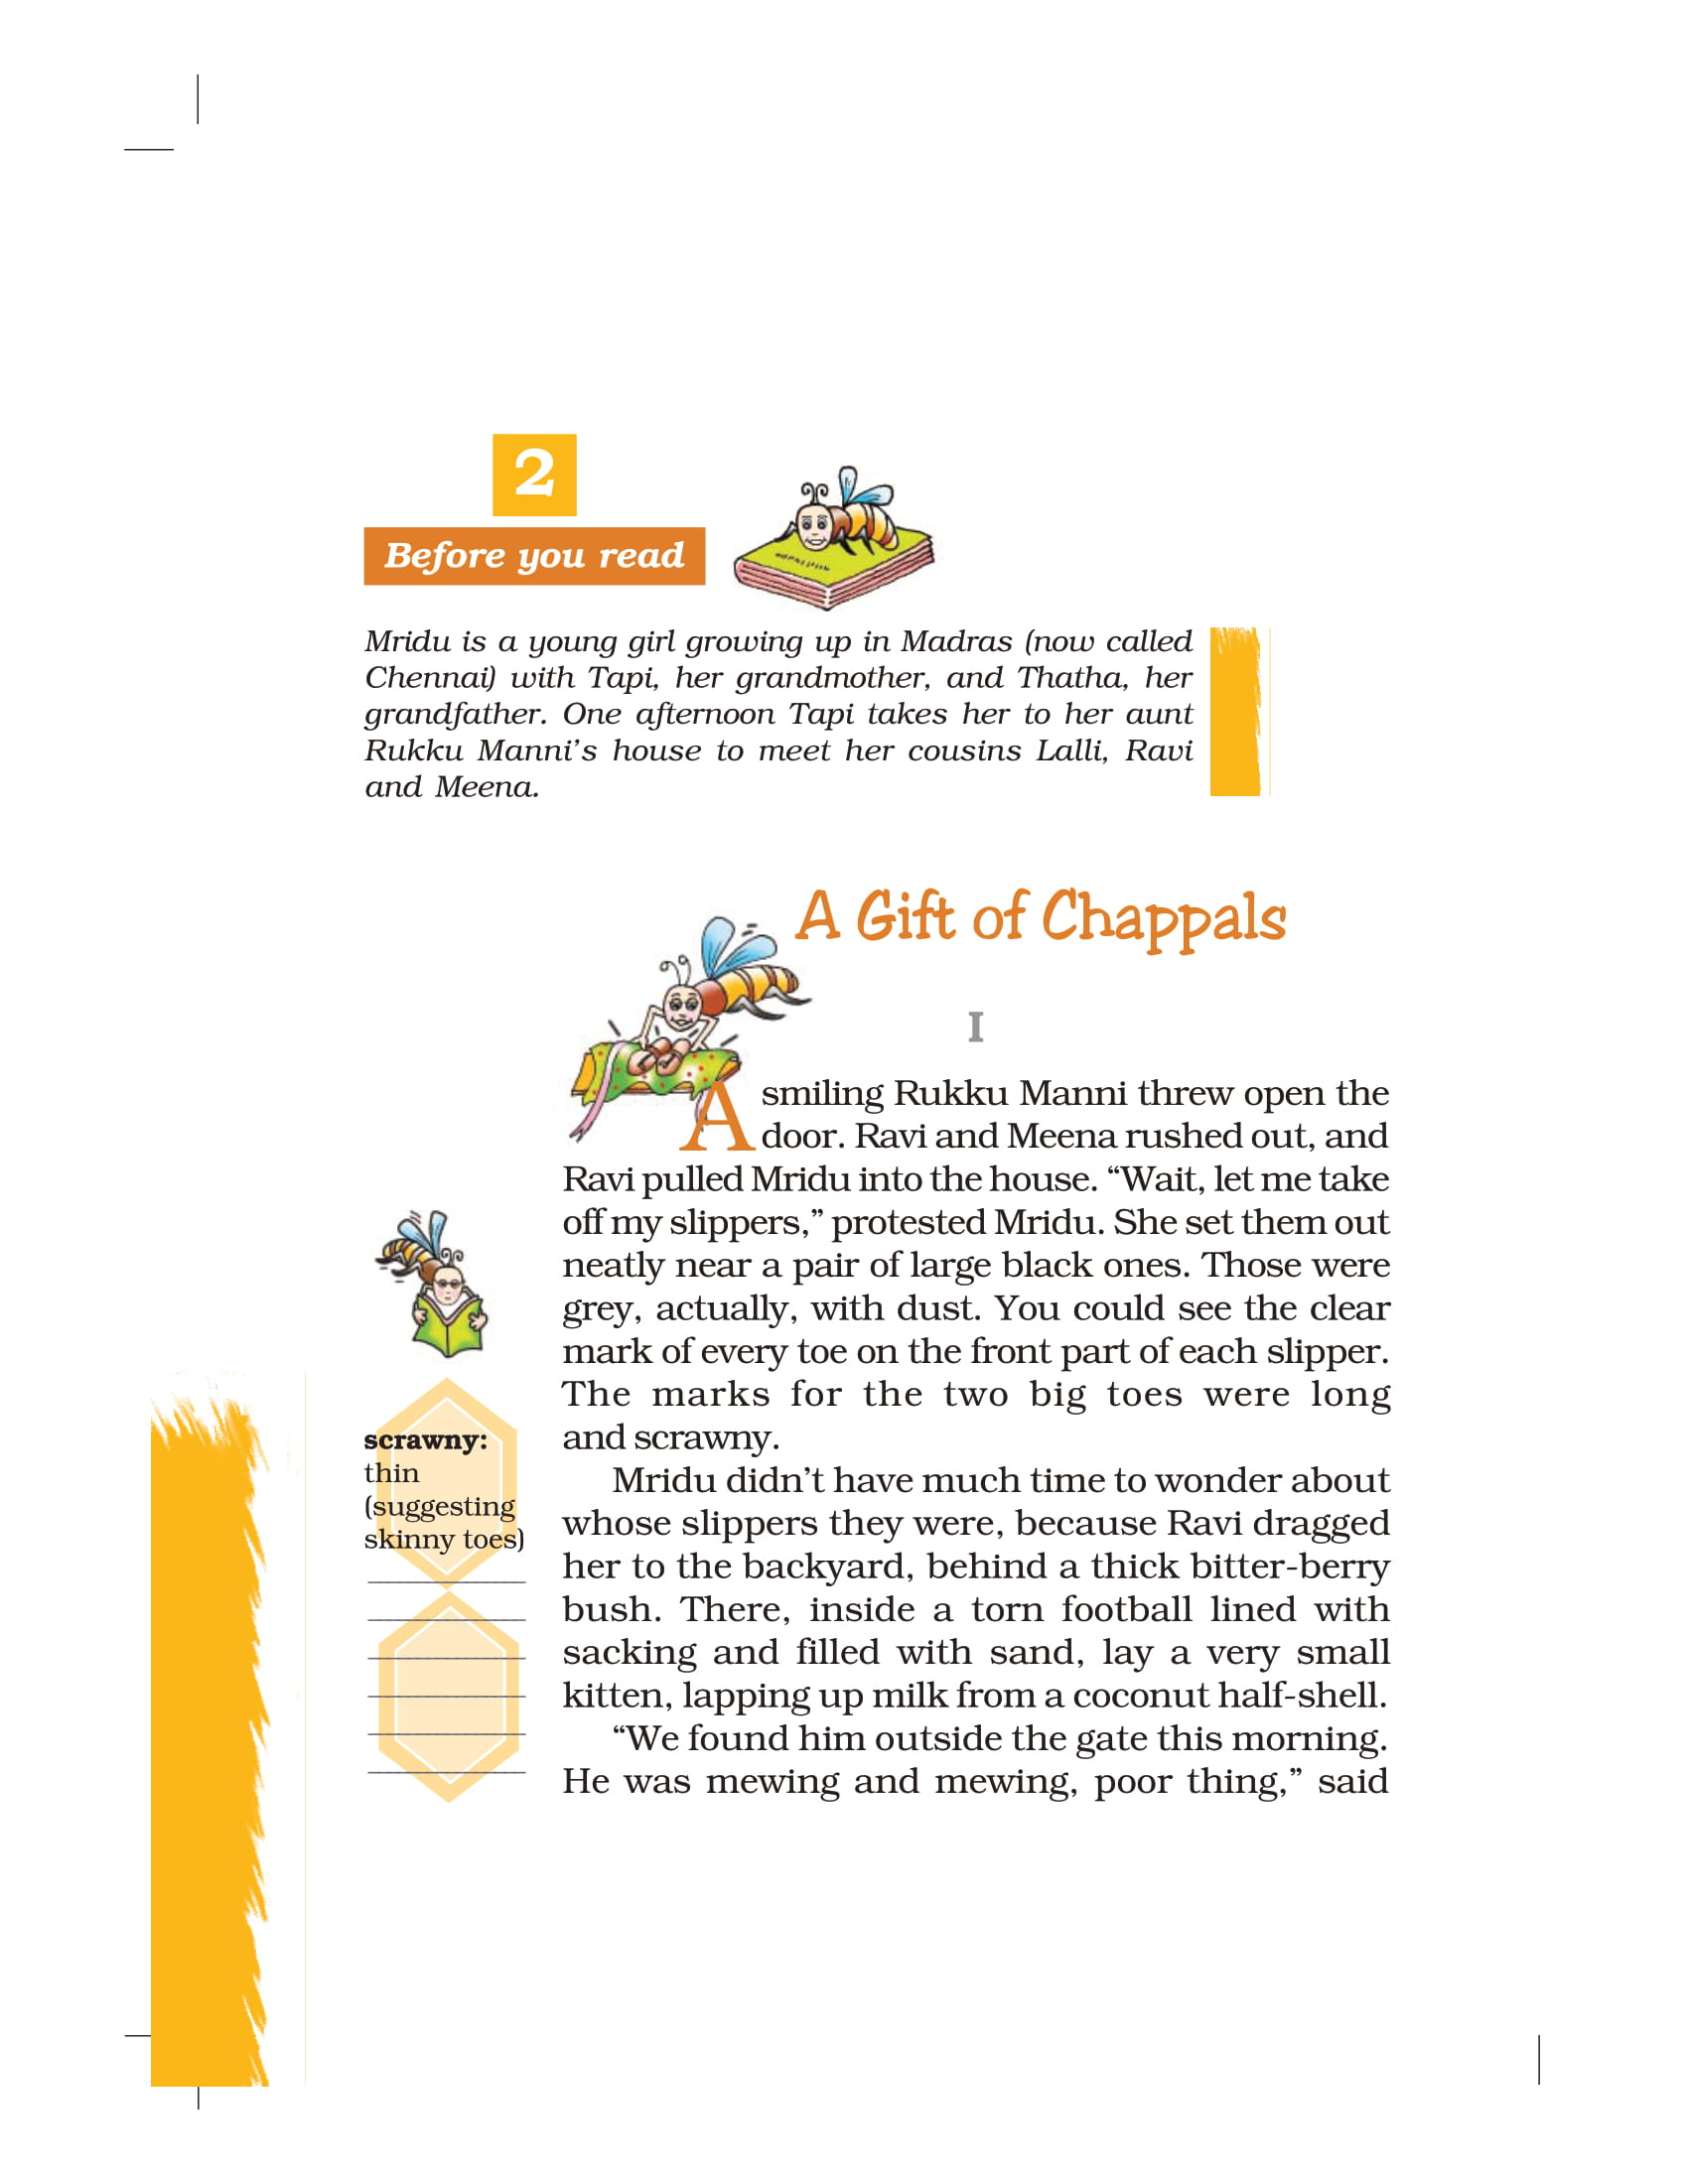 NCERT Book Class 7 English Honeycomb Chapter 2 A Gift of Chappals